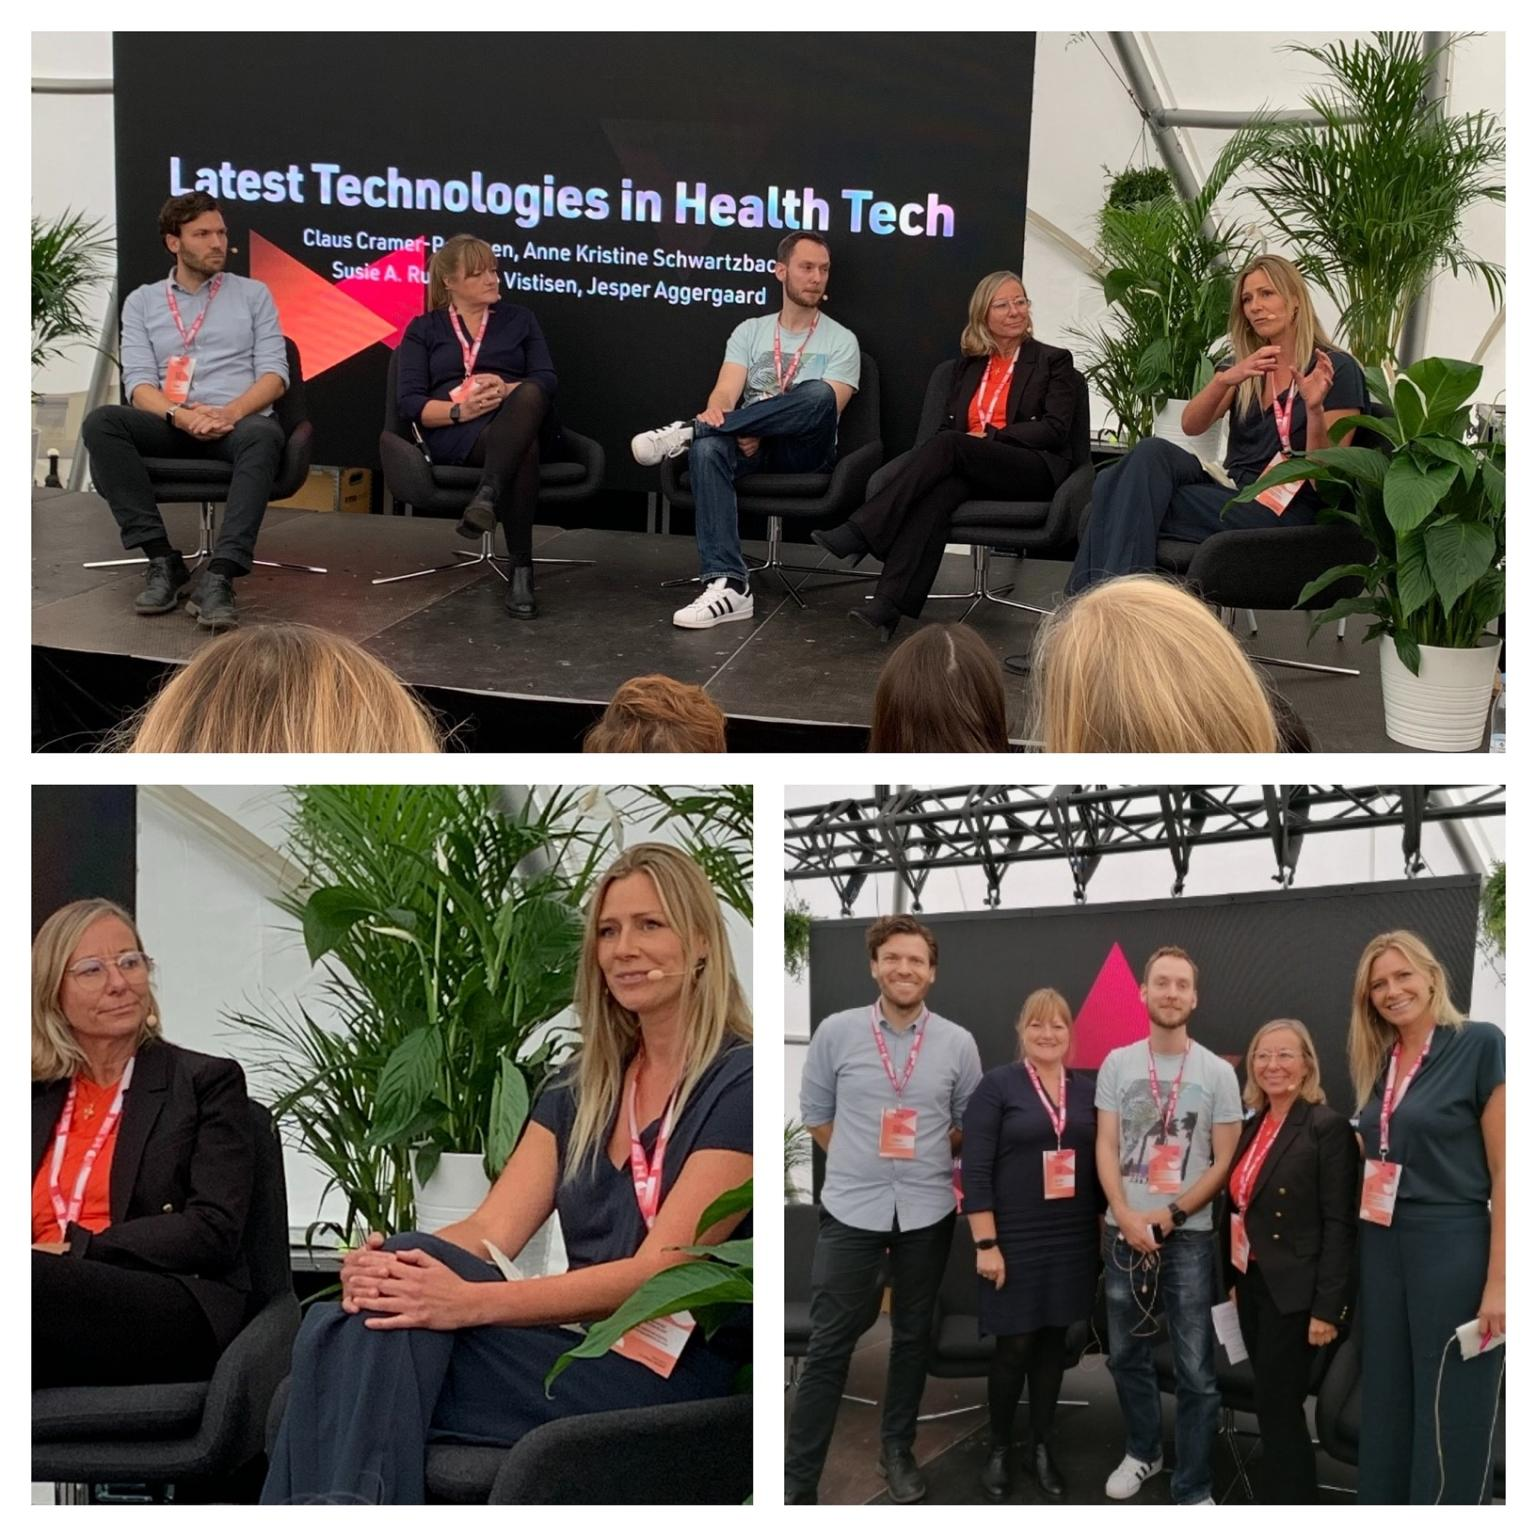 TechBBQ Latest Technologies in Health Tech